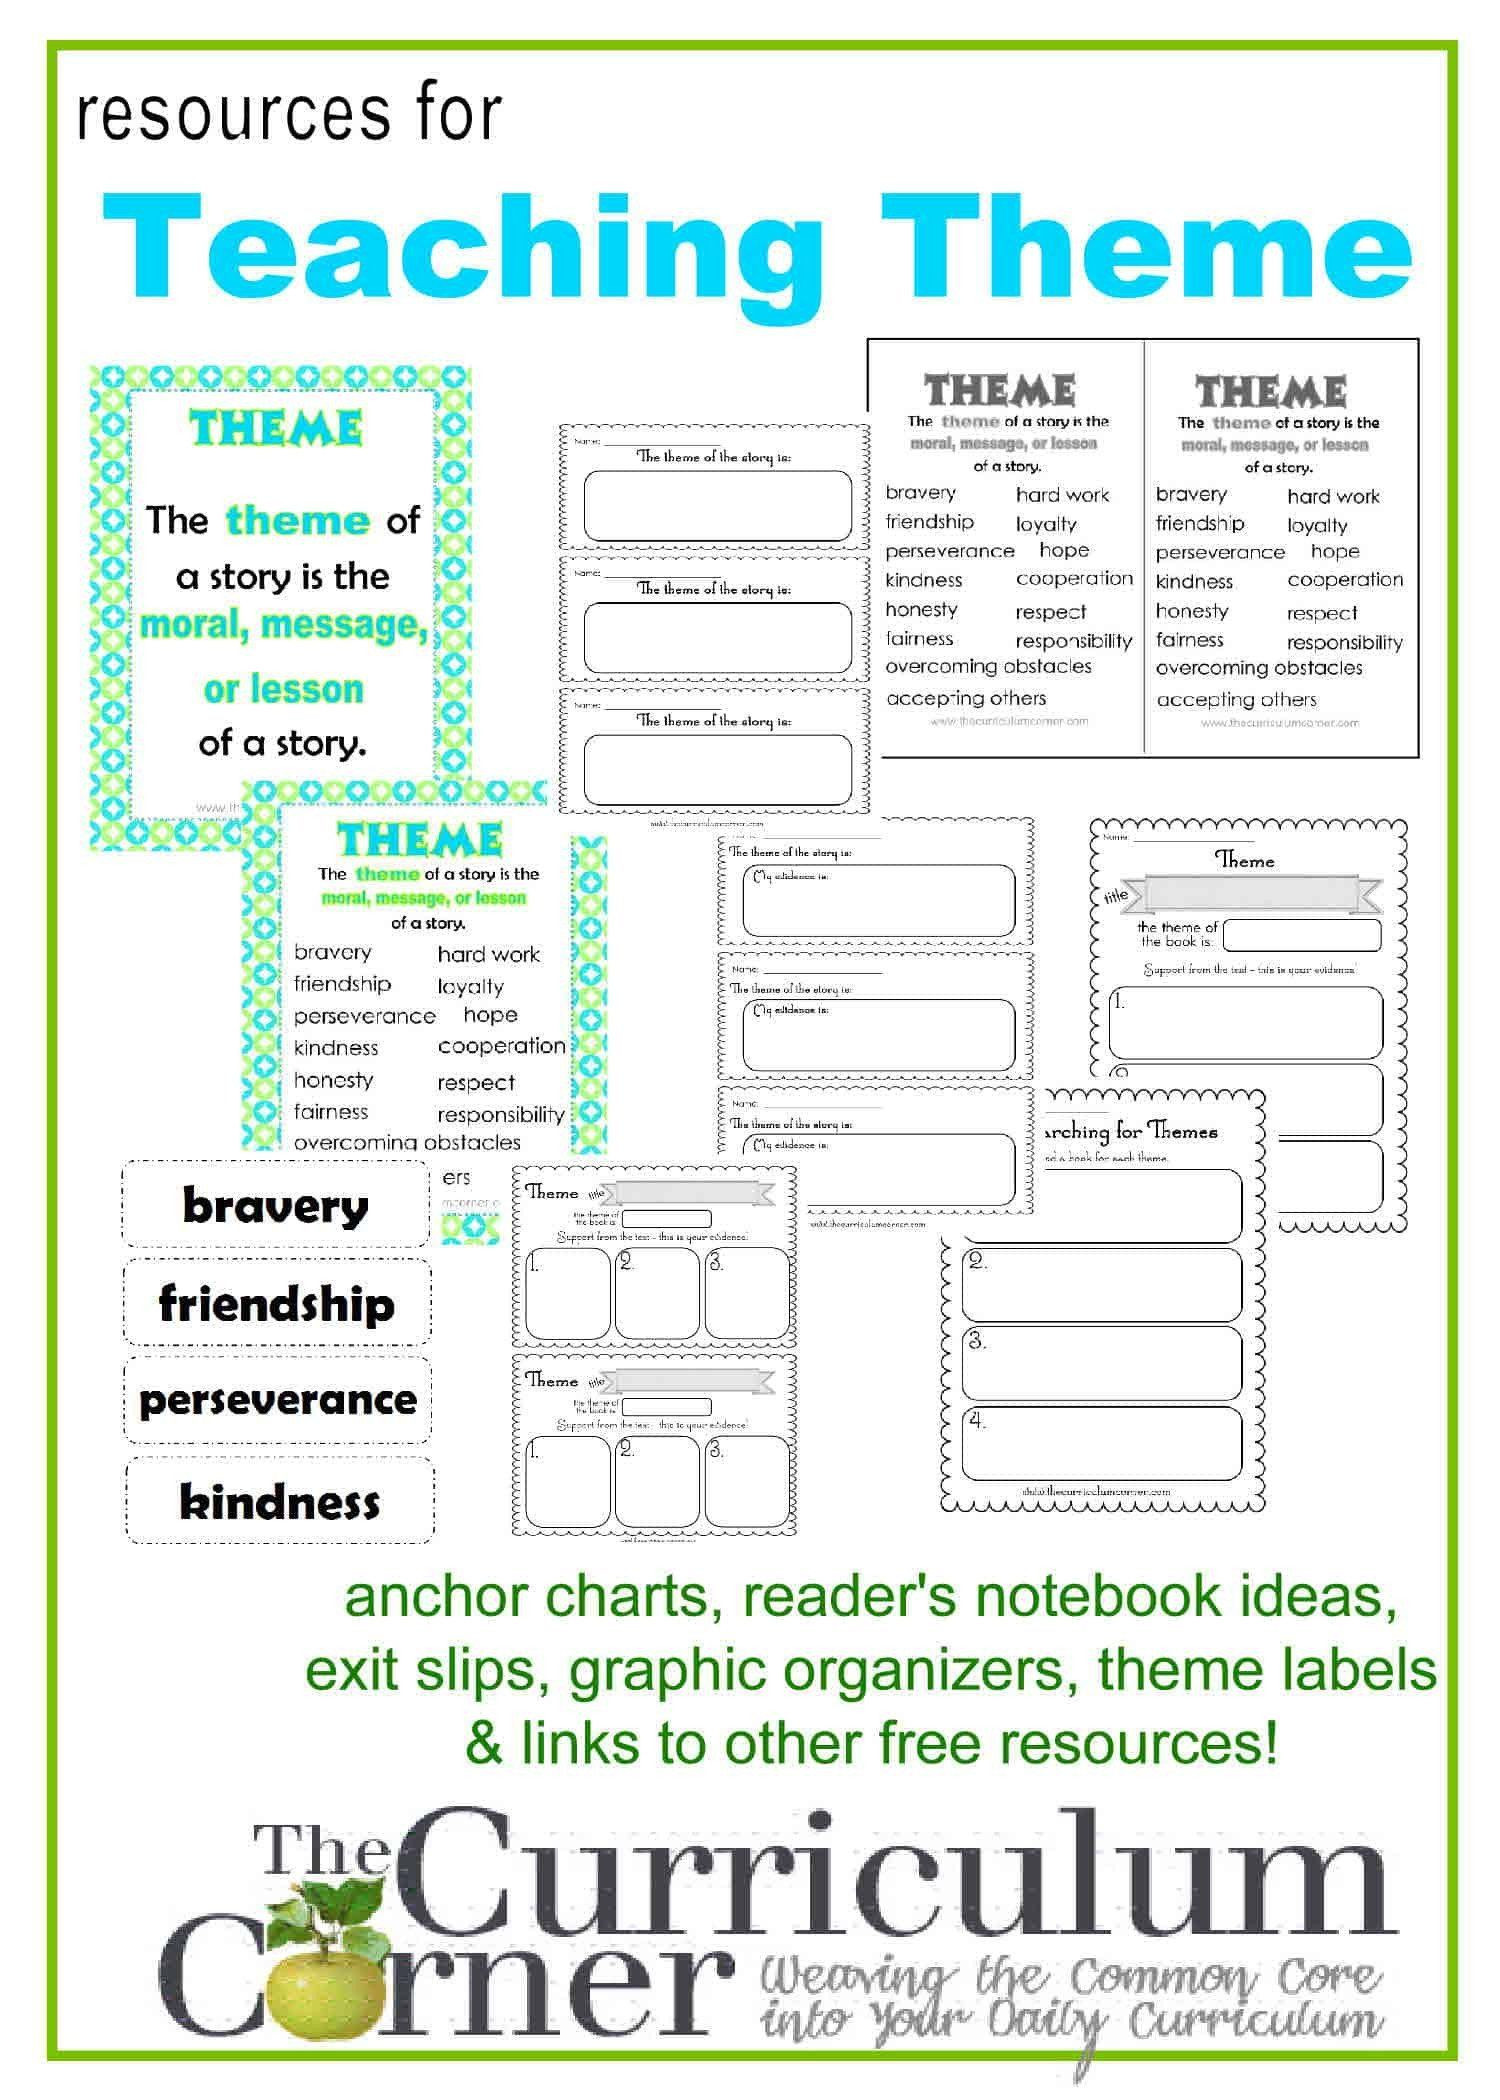 Theme Worksheet 4th Grade 32 theme Worksheet 4th Grade In 2020